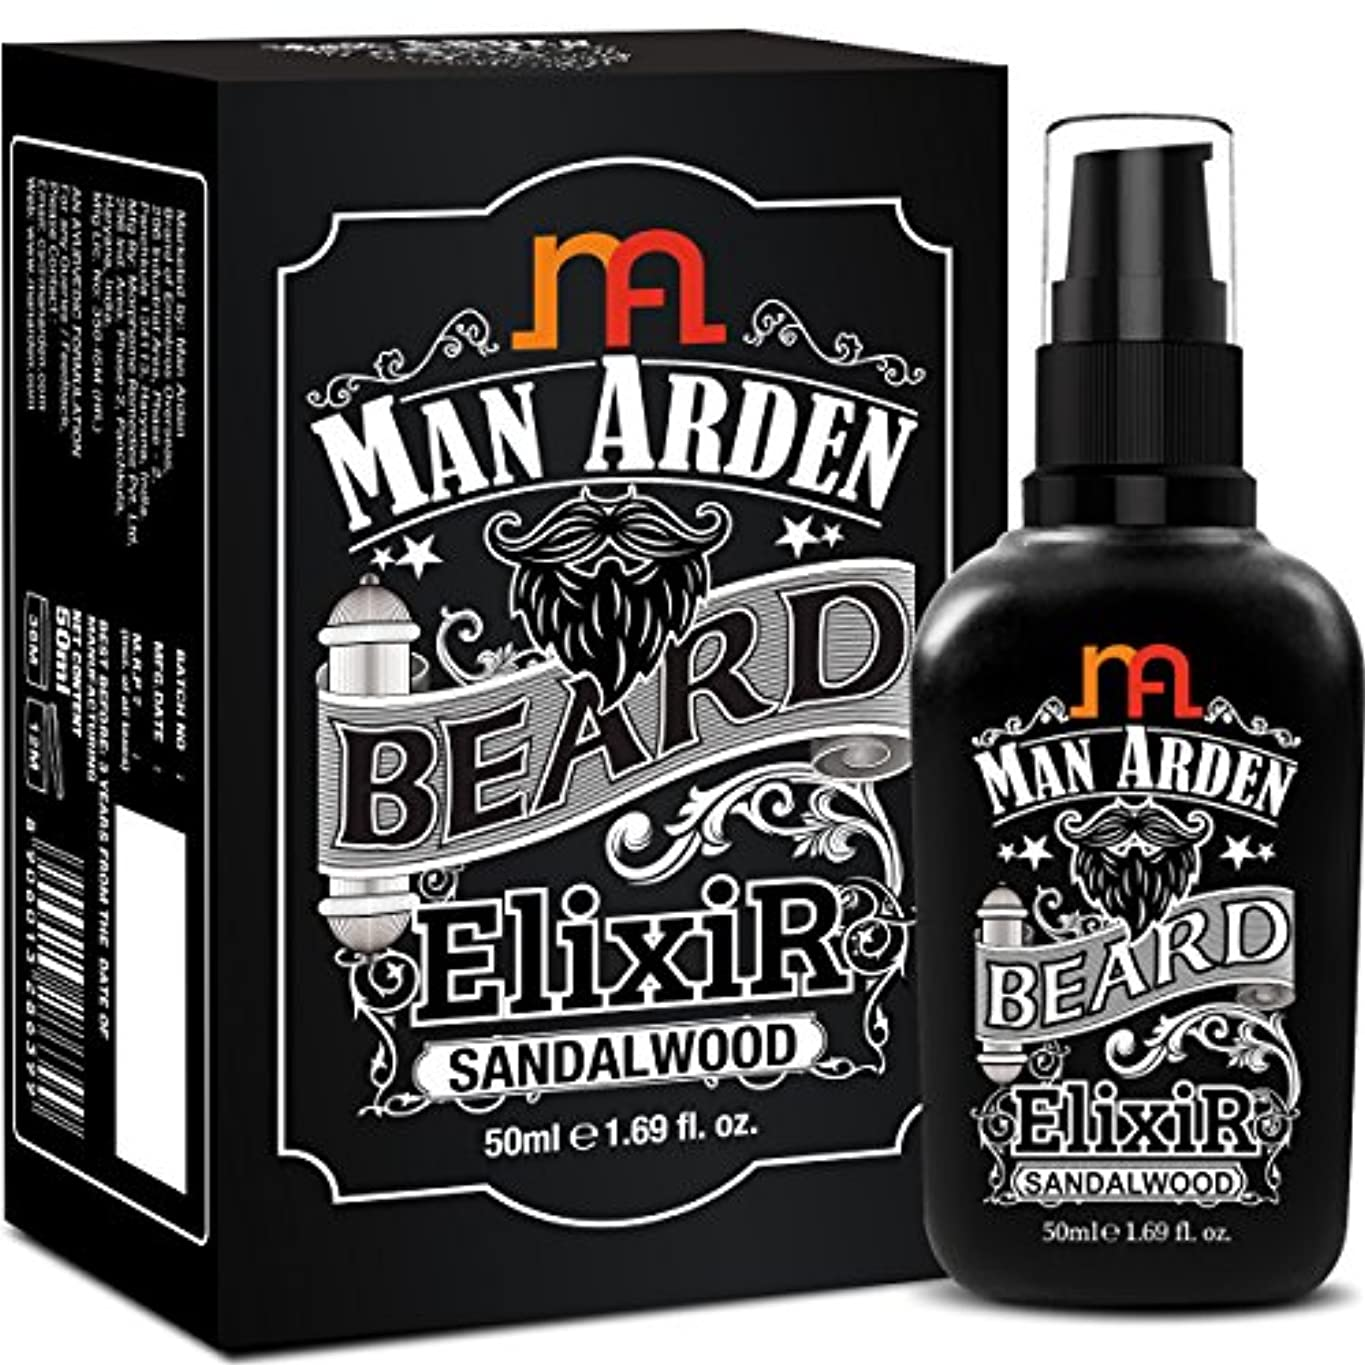 重々しい手入れ天国Man Arden Beard Elixir Oil 50ml (Sandalwood) - 7 Oils Blend For Beard Repair, Growth & Nourishment8906013286399